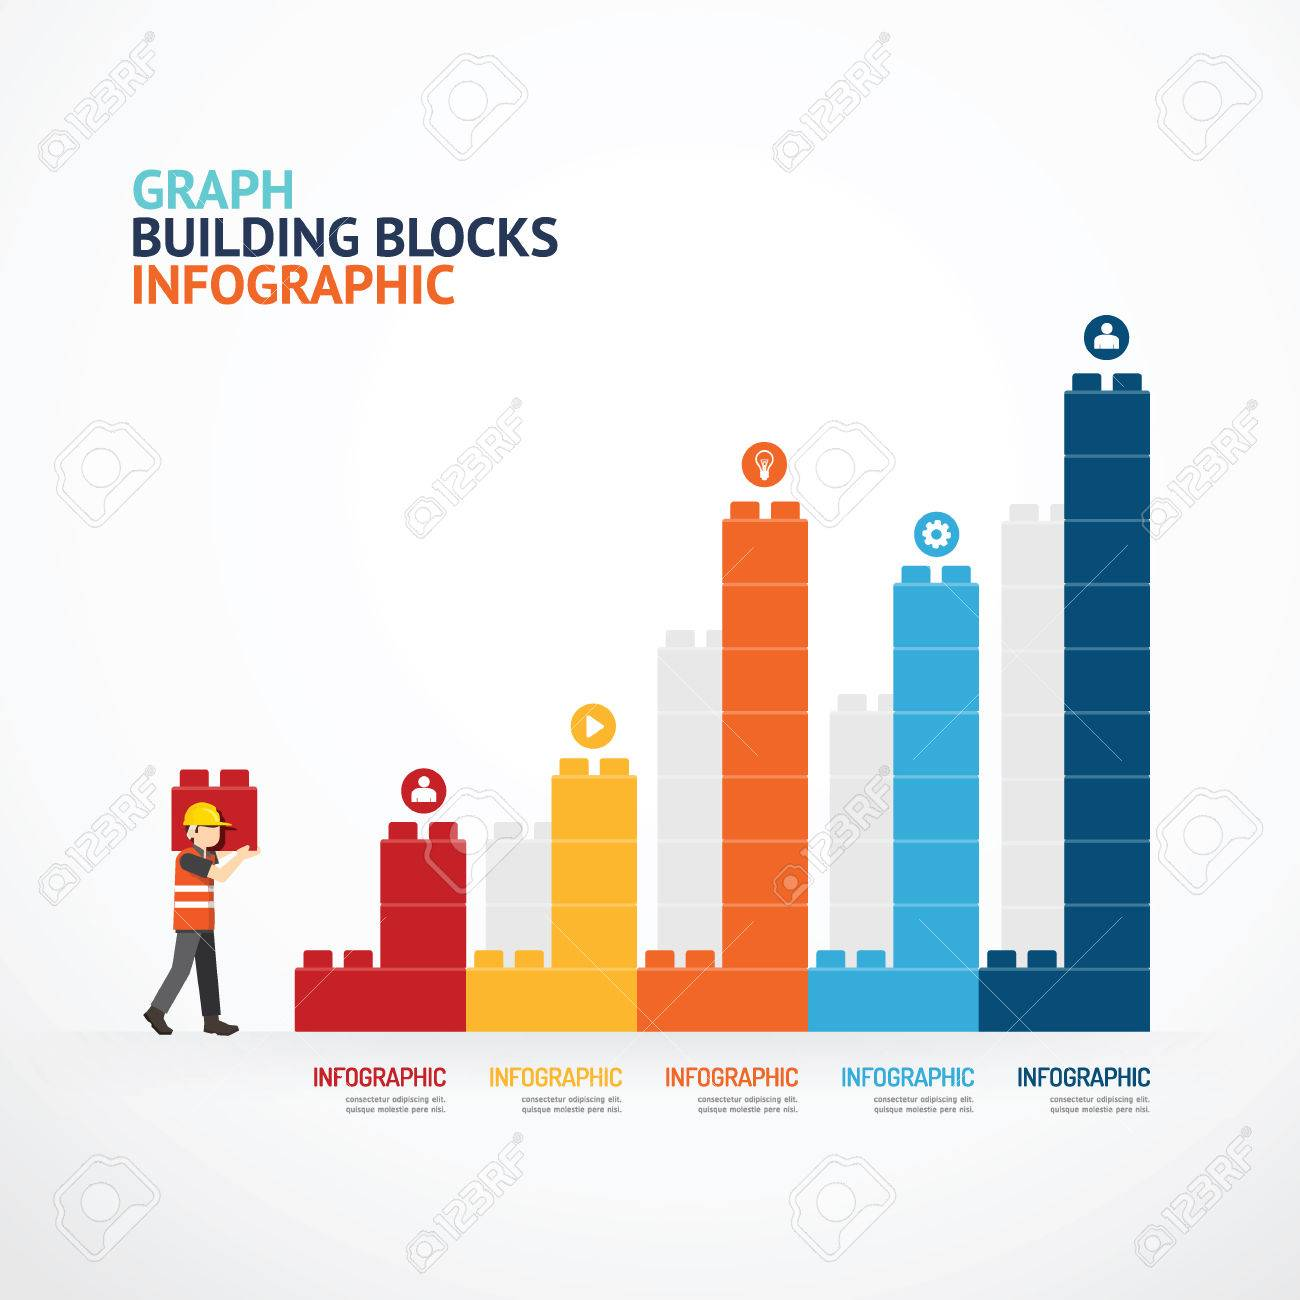 infographic template with building blocks graph concept